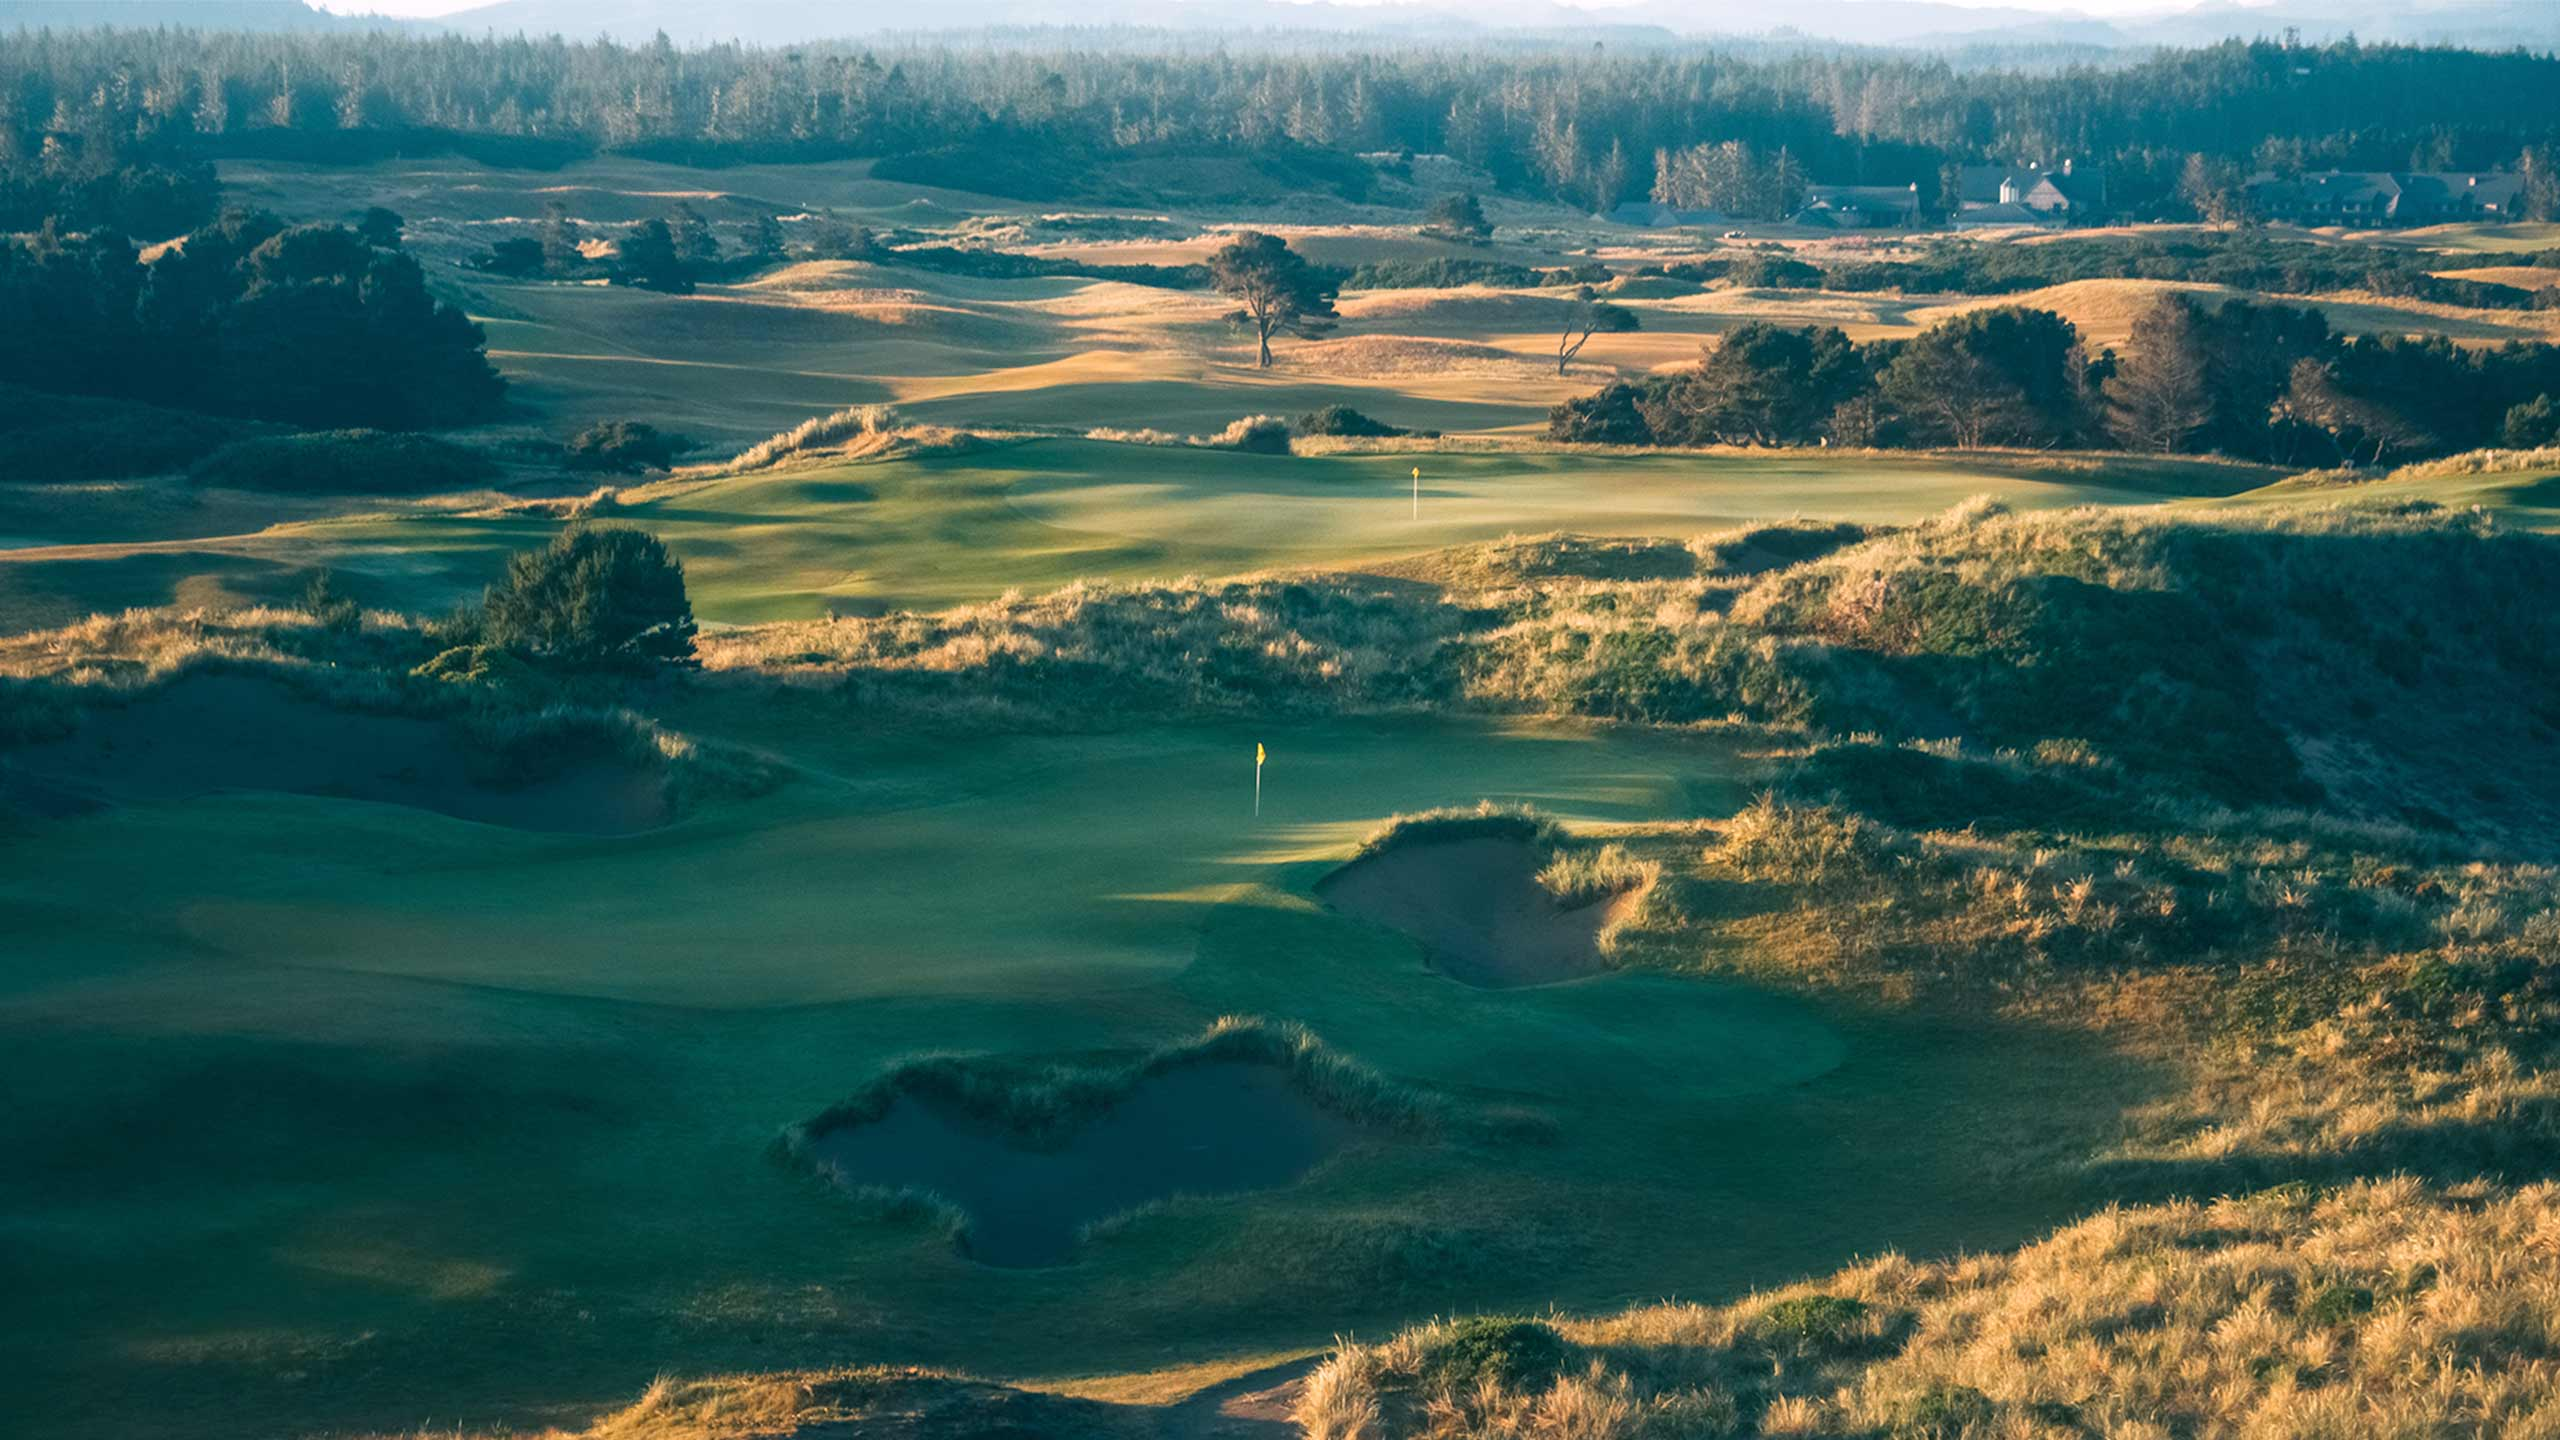 A view of Pacific Dunes in Bandon, Ore.